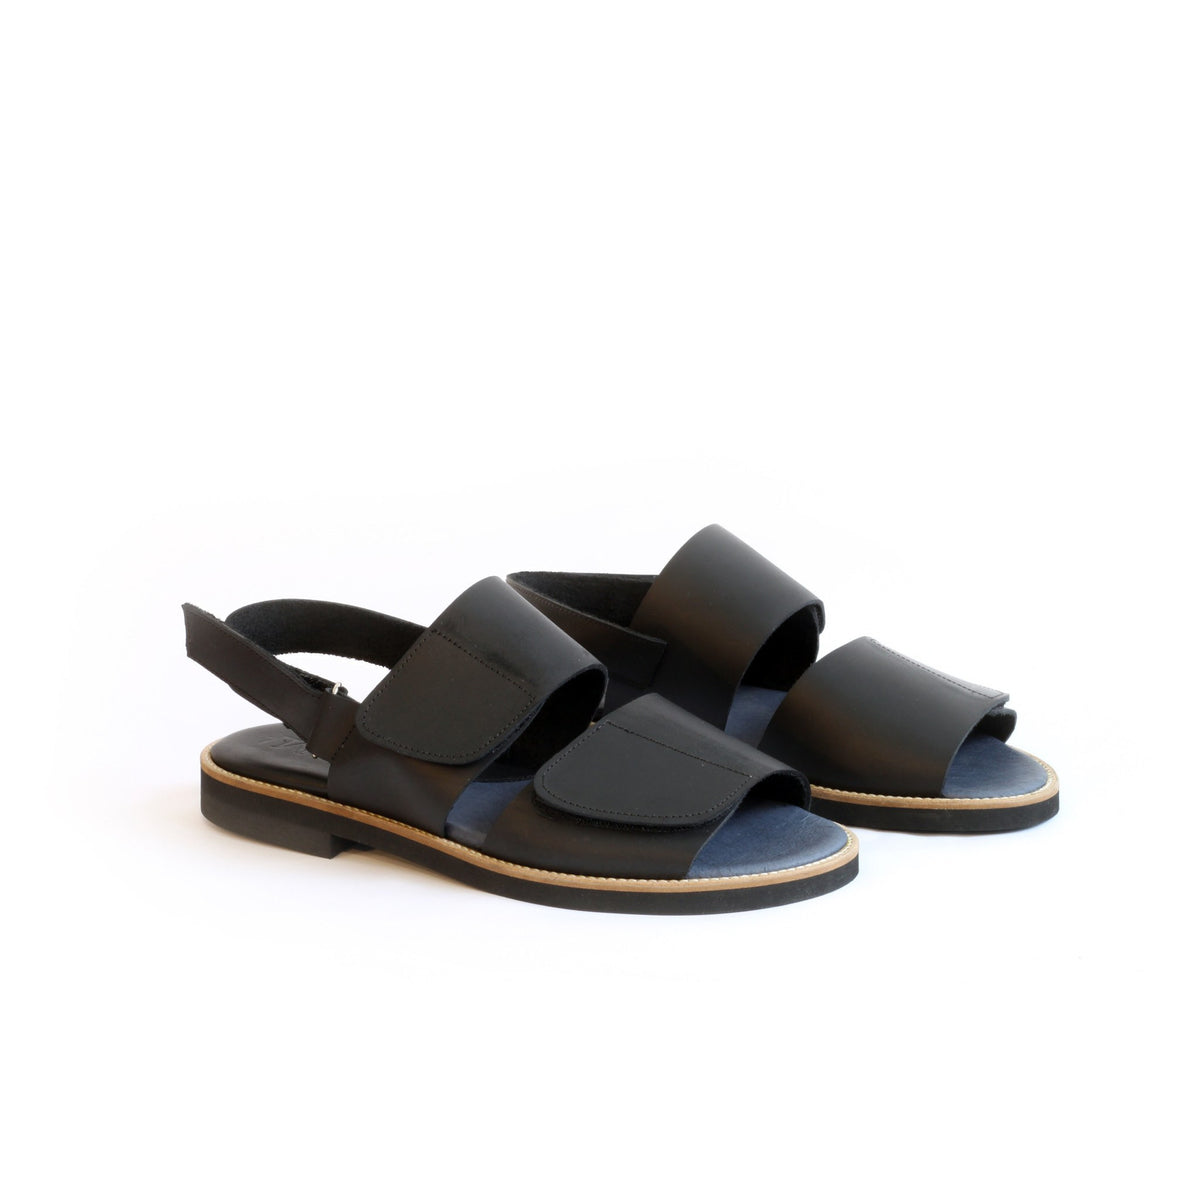 Black Women's Velcro Sandals